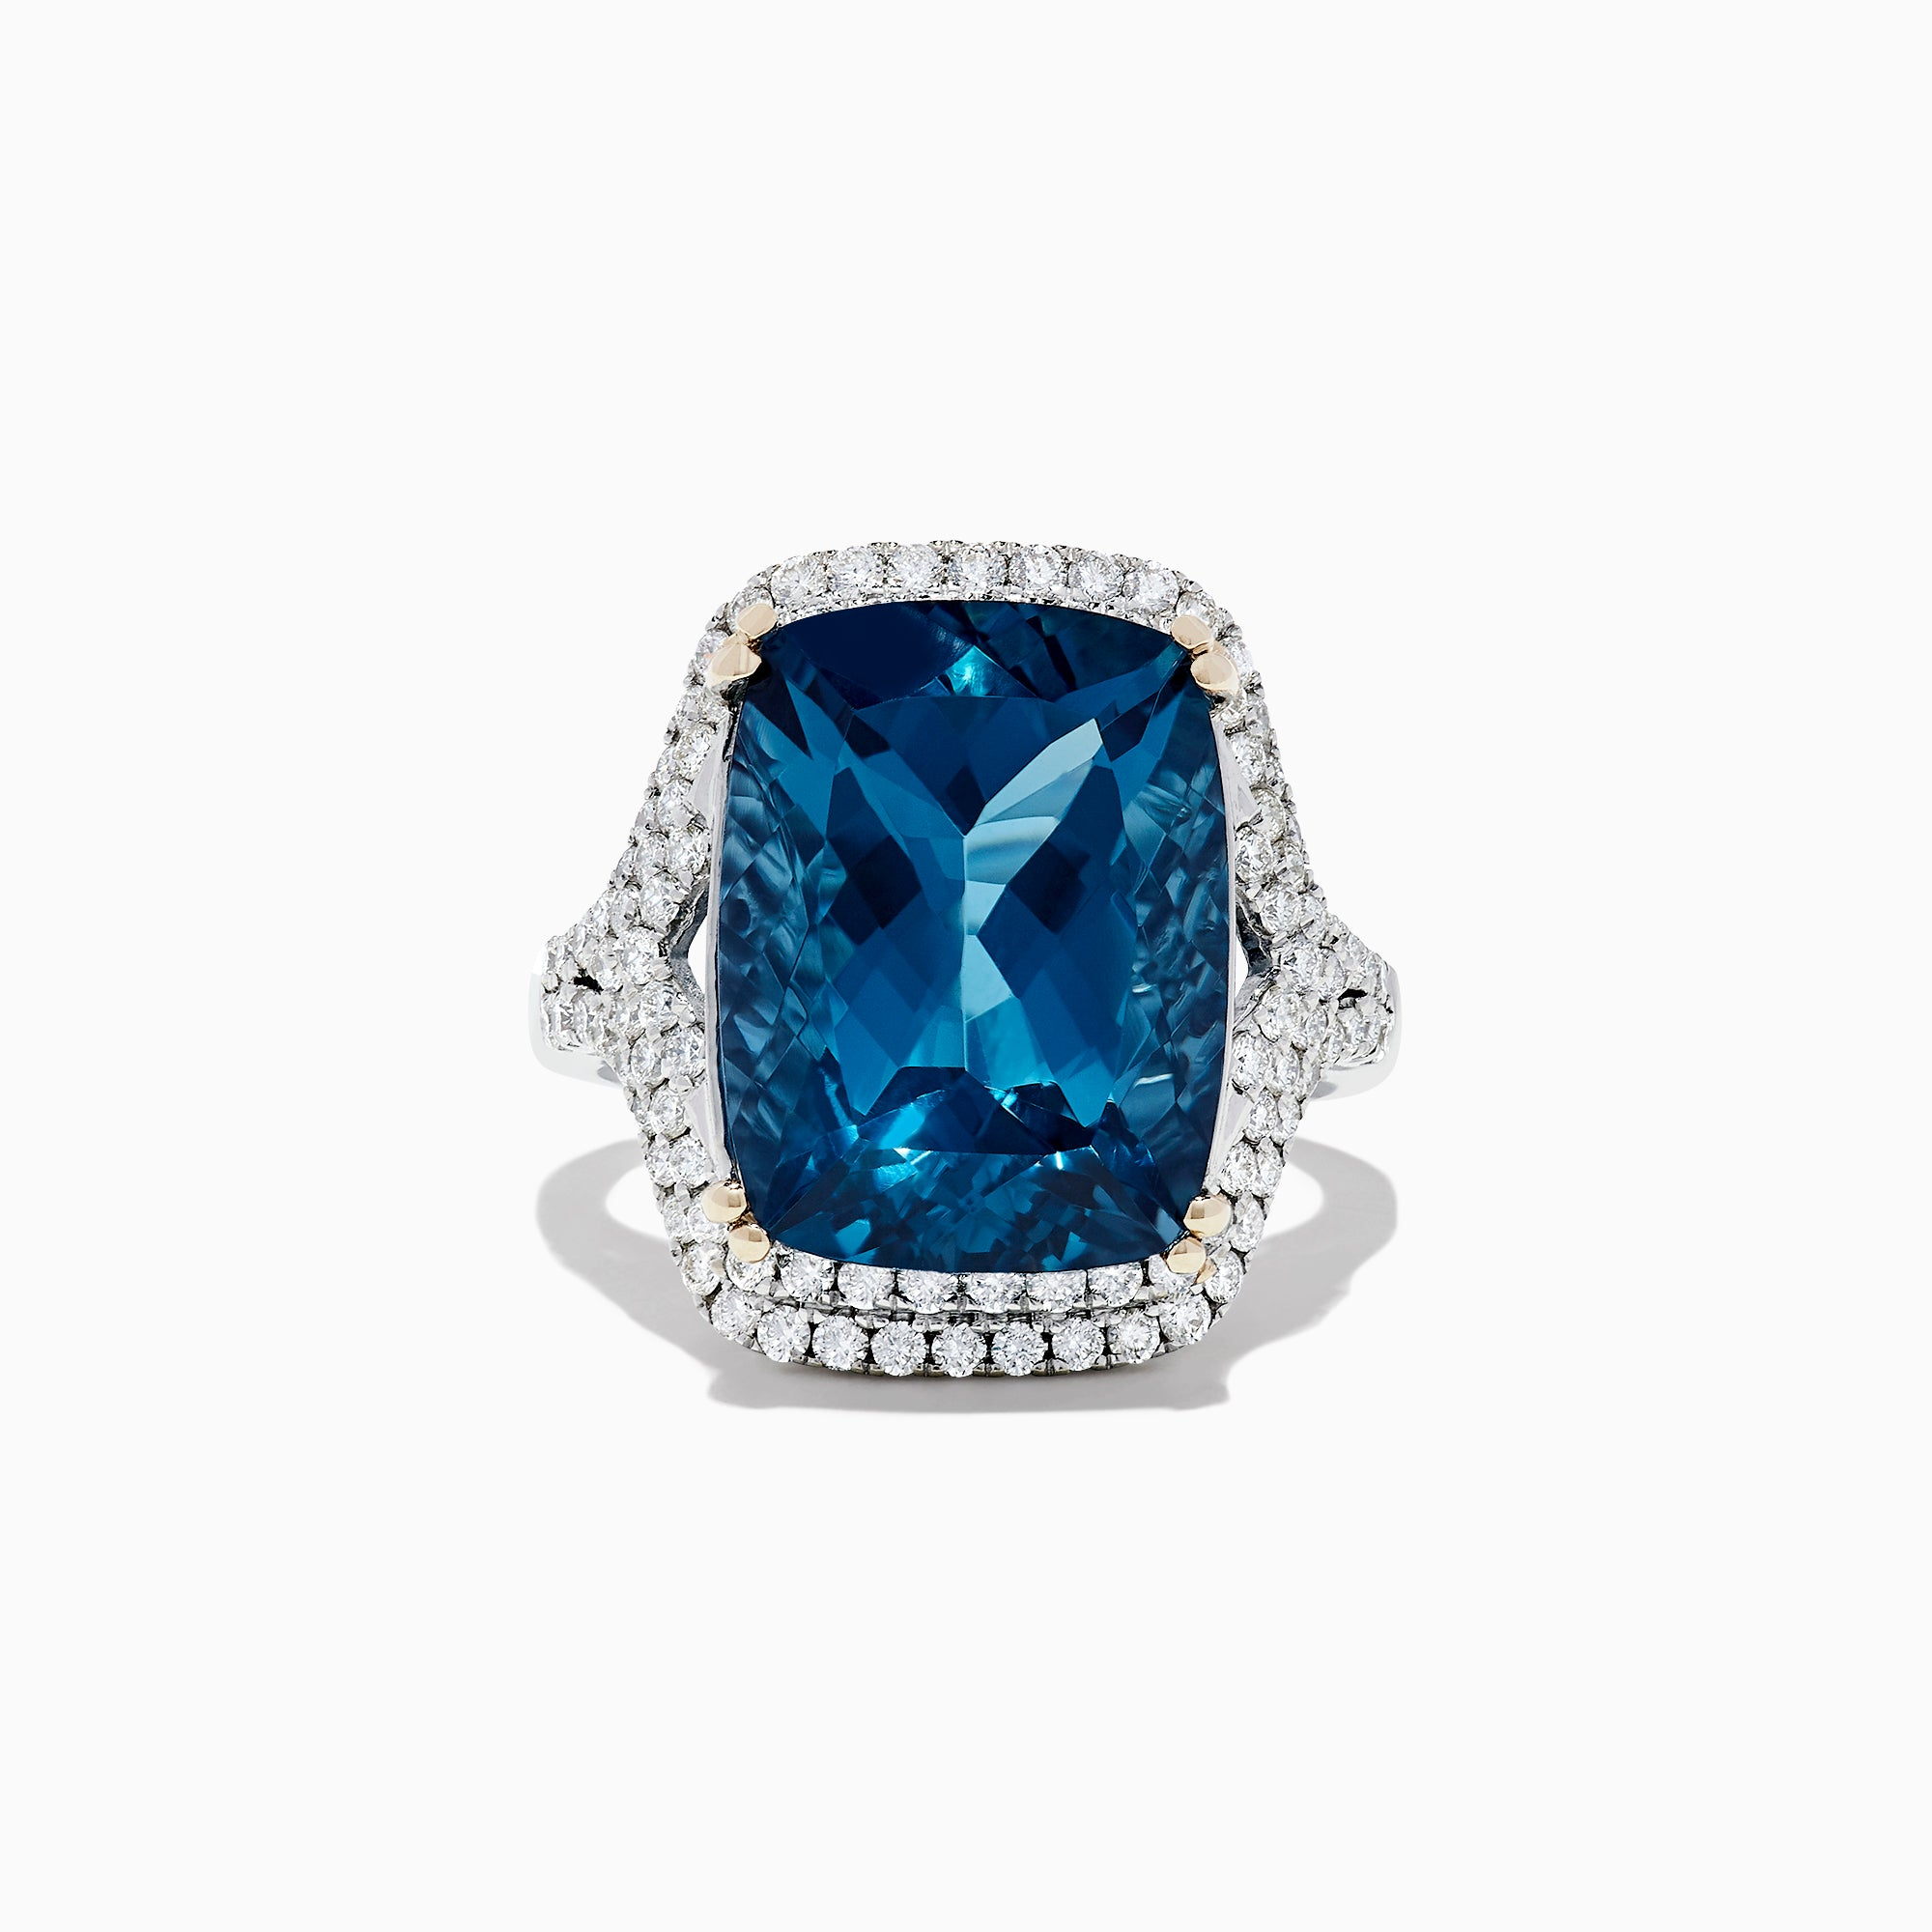 Effy 14K White Gold London Blue Topaz and Diamond Cocktail Ring, 16.85 TCW